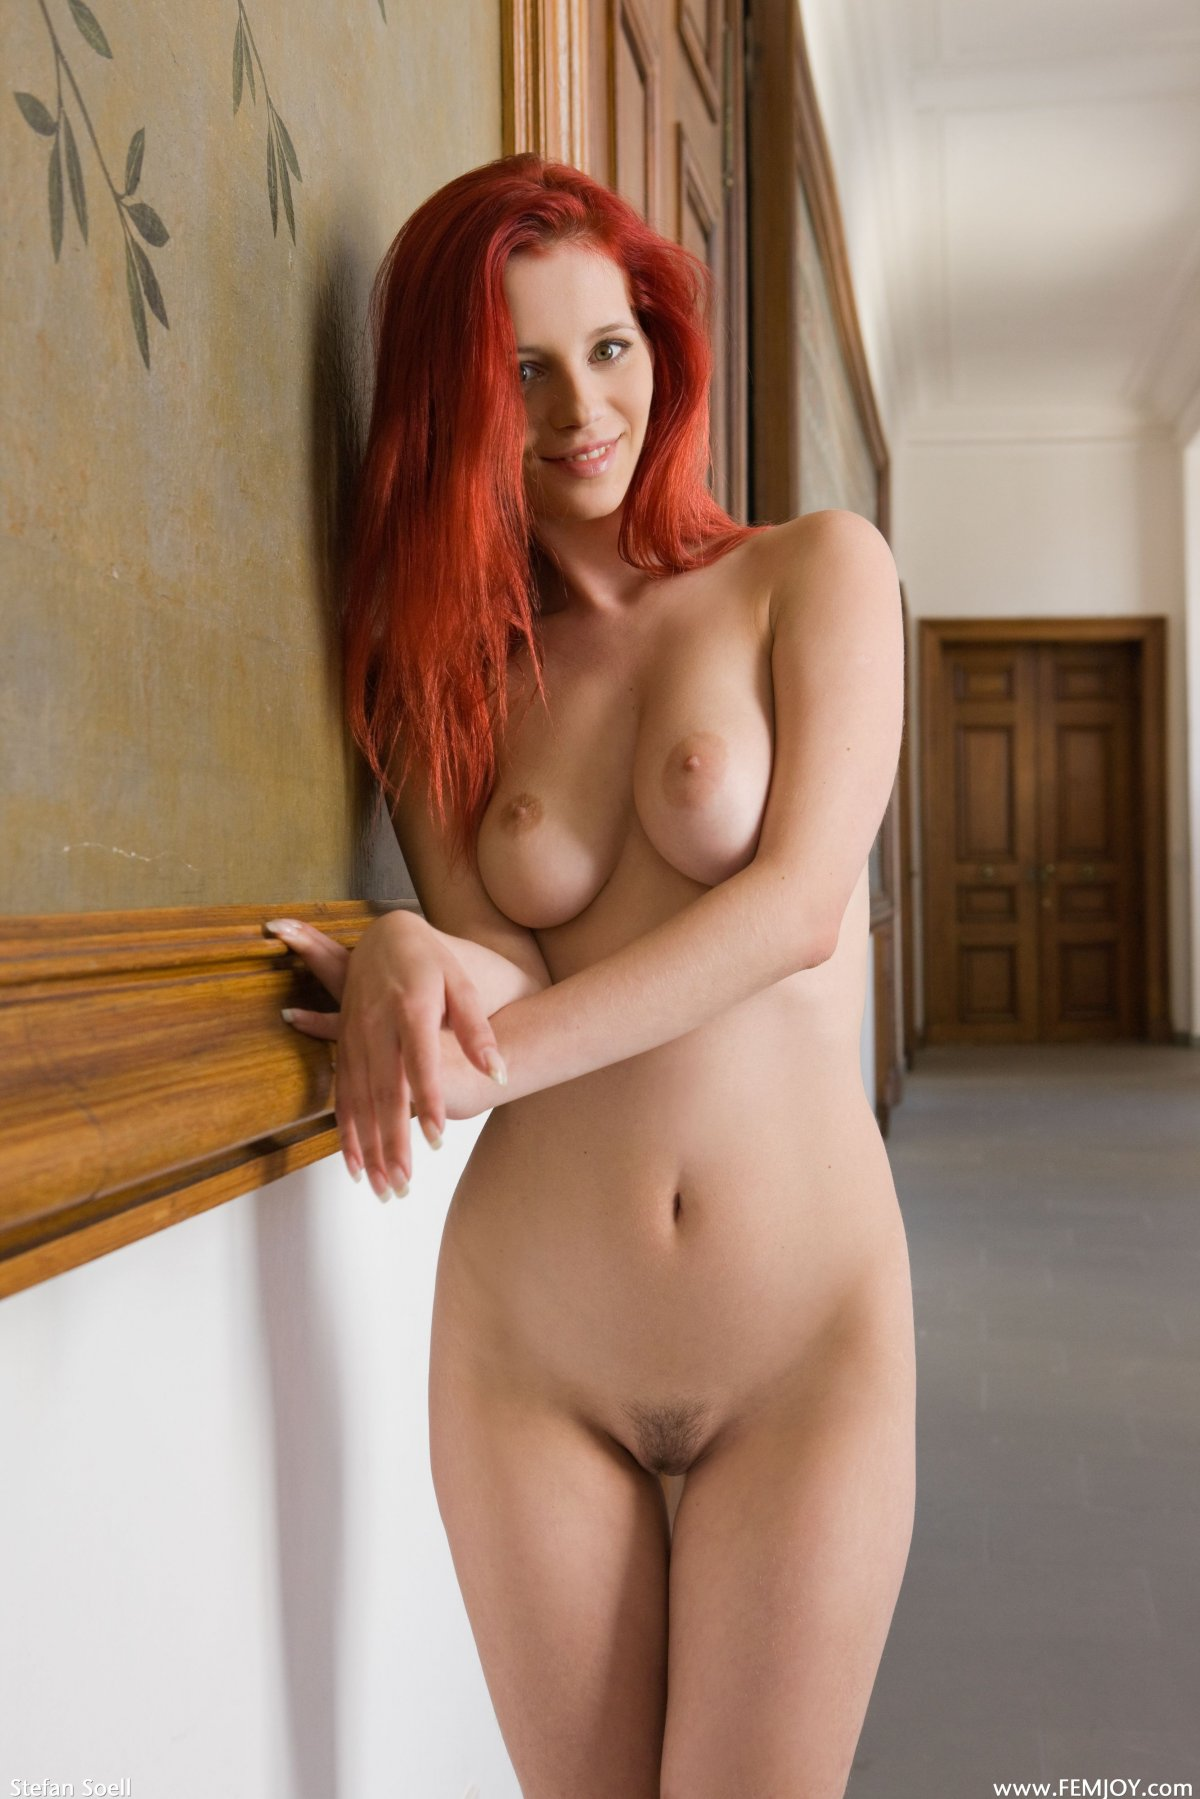 Something also Hot redhead girls naked ariel